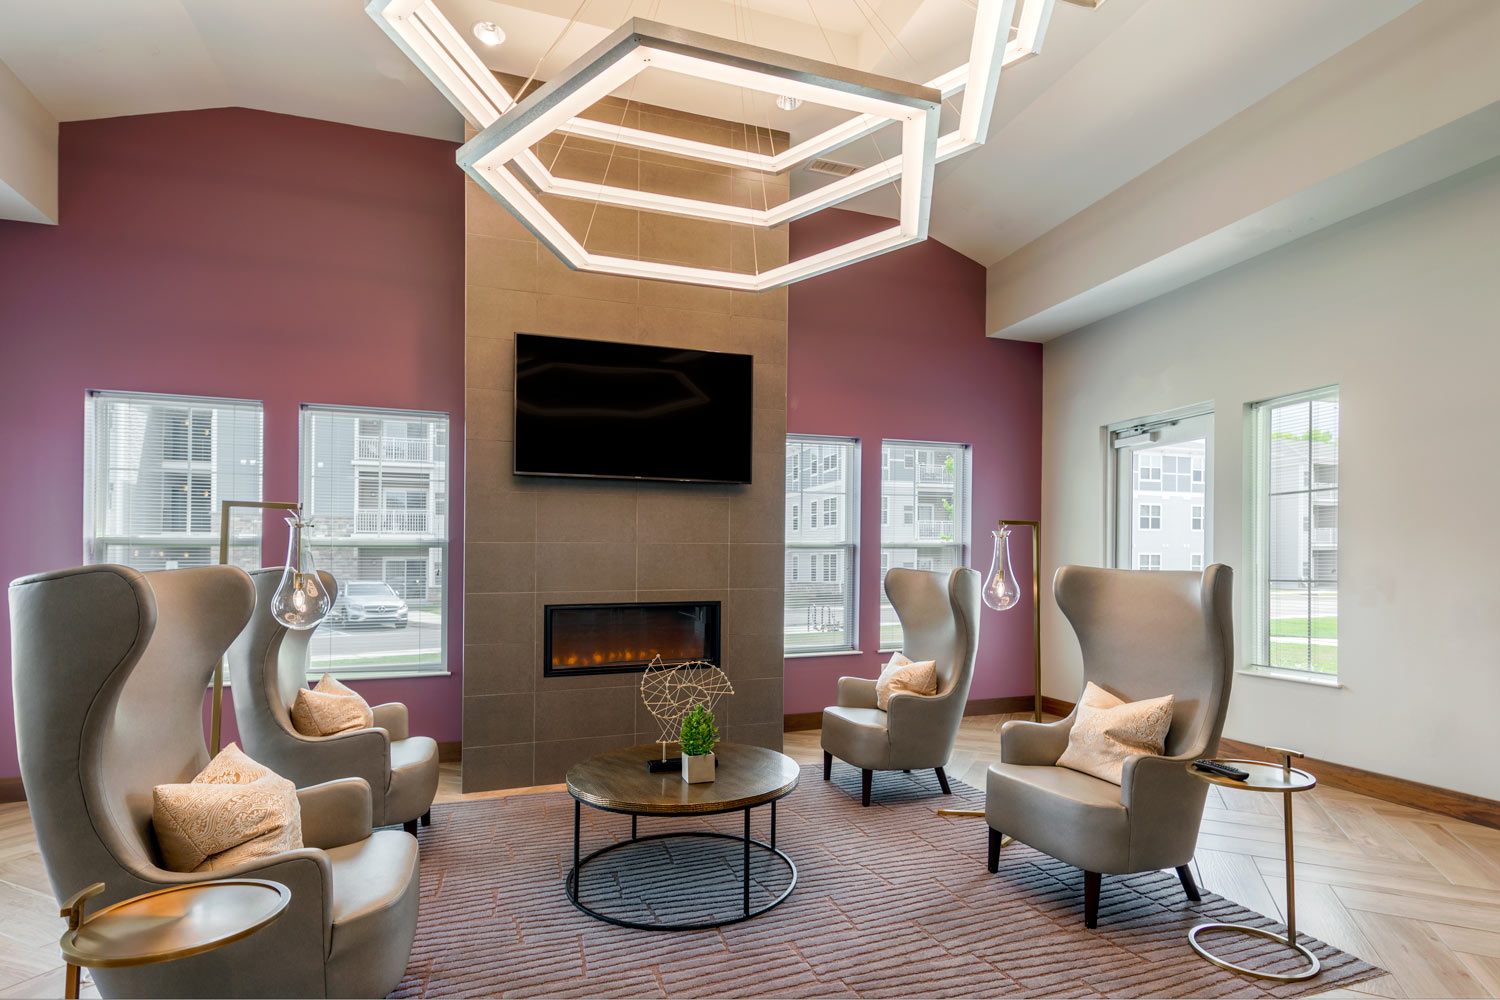 clubhouse with seating area, tables, chairs, modern lighting, flat screen television, and fireplace - luxury apartments near christiana mall